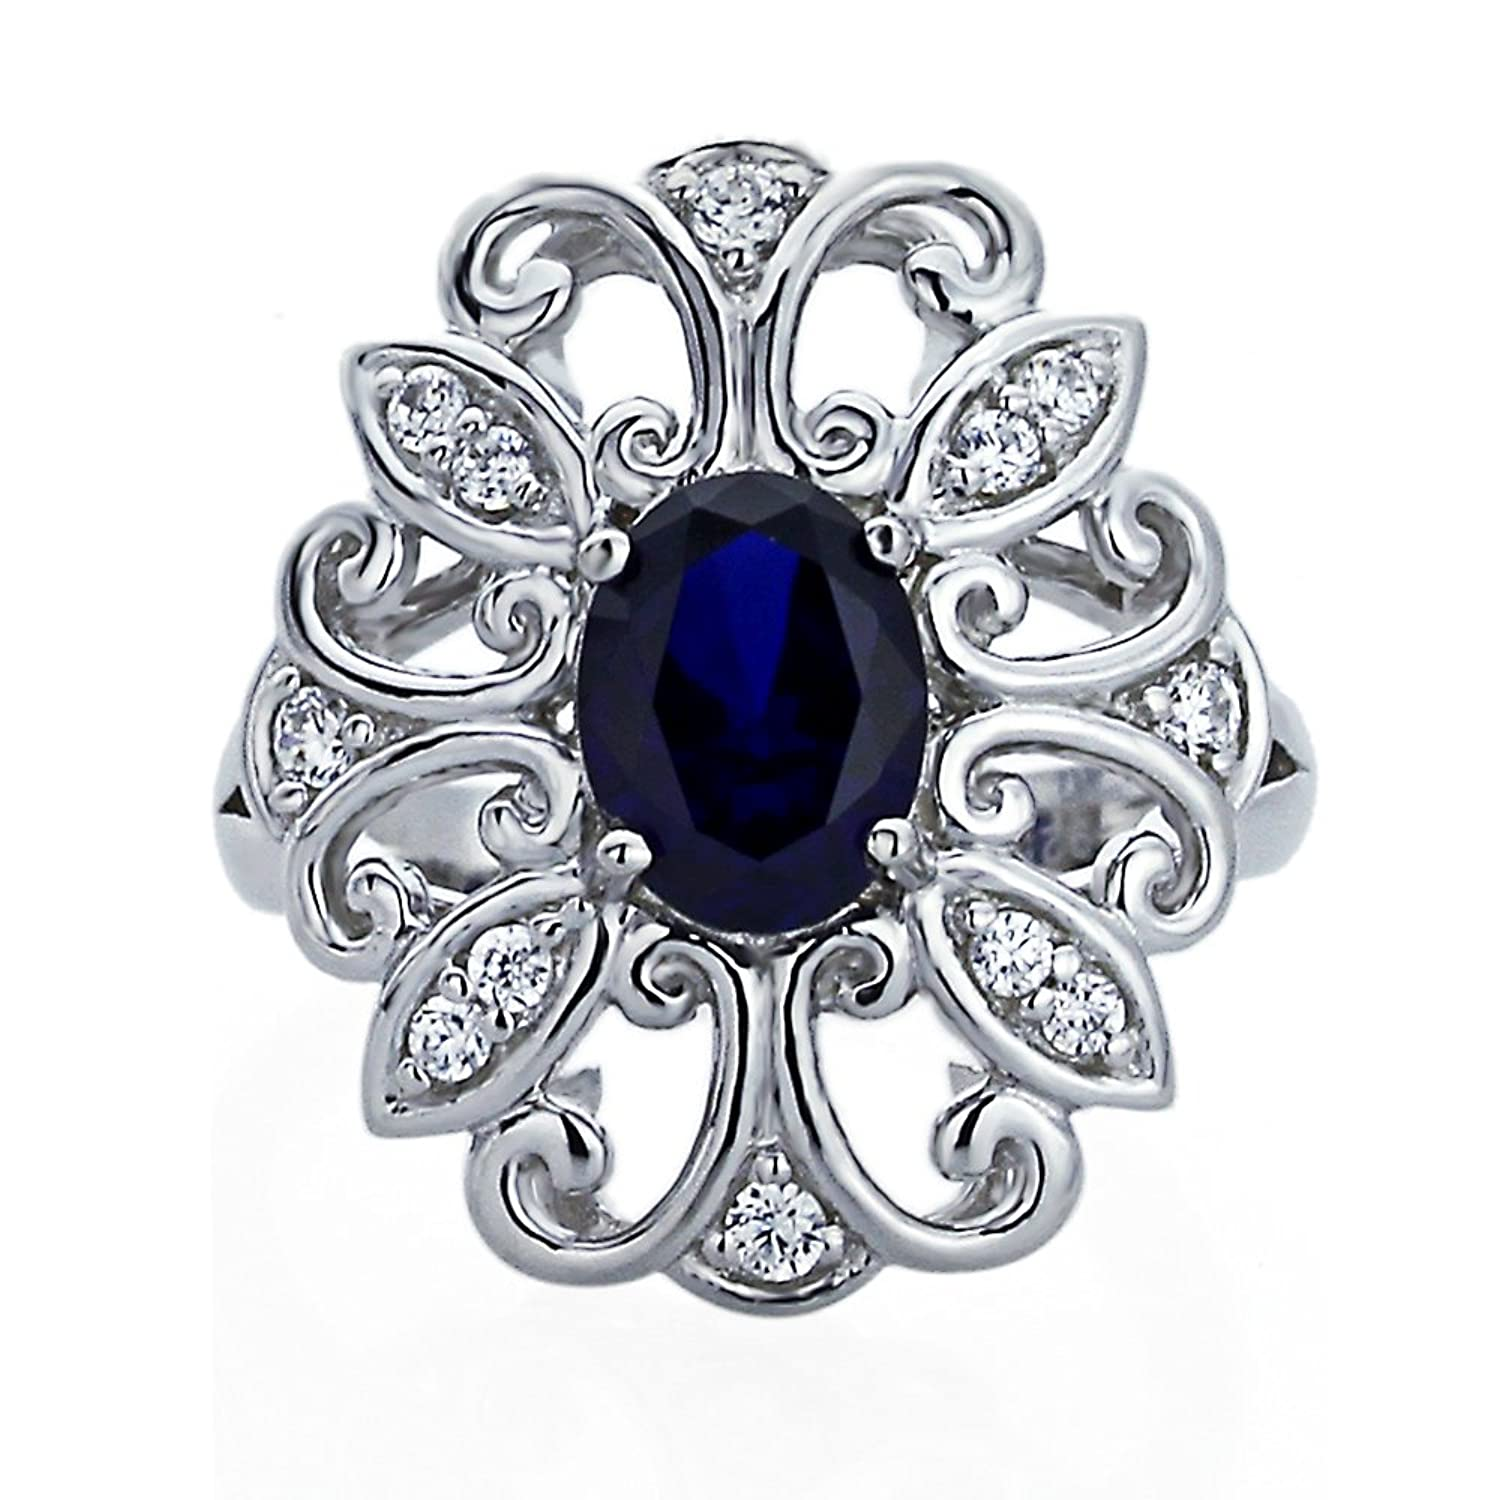 Sterling Silver Art Deco Design 1.25ct Oval Simulated Blue Sapphire CZ Cocktail Ring ( Size 5 to 9 )